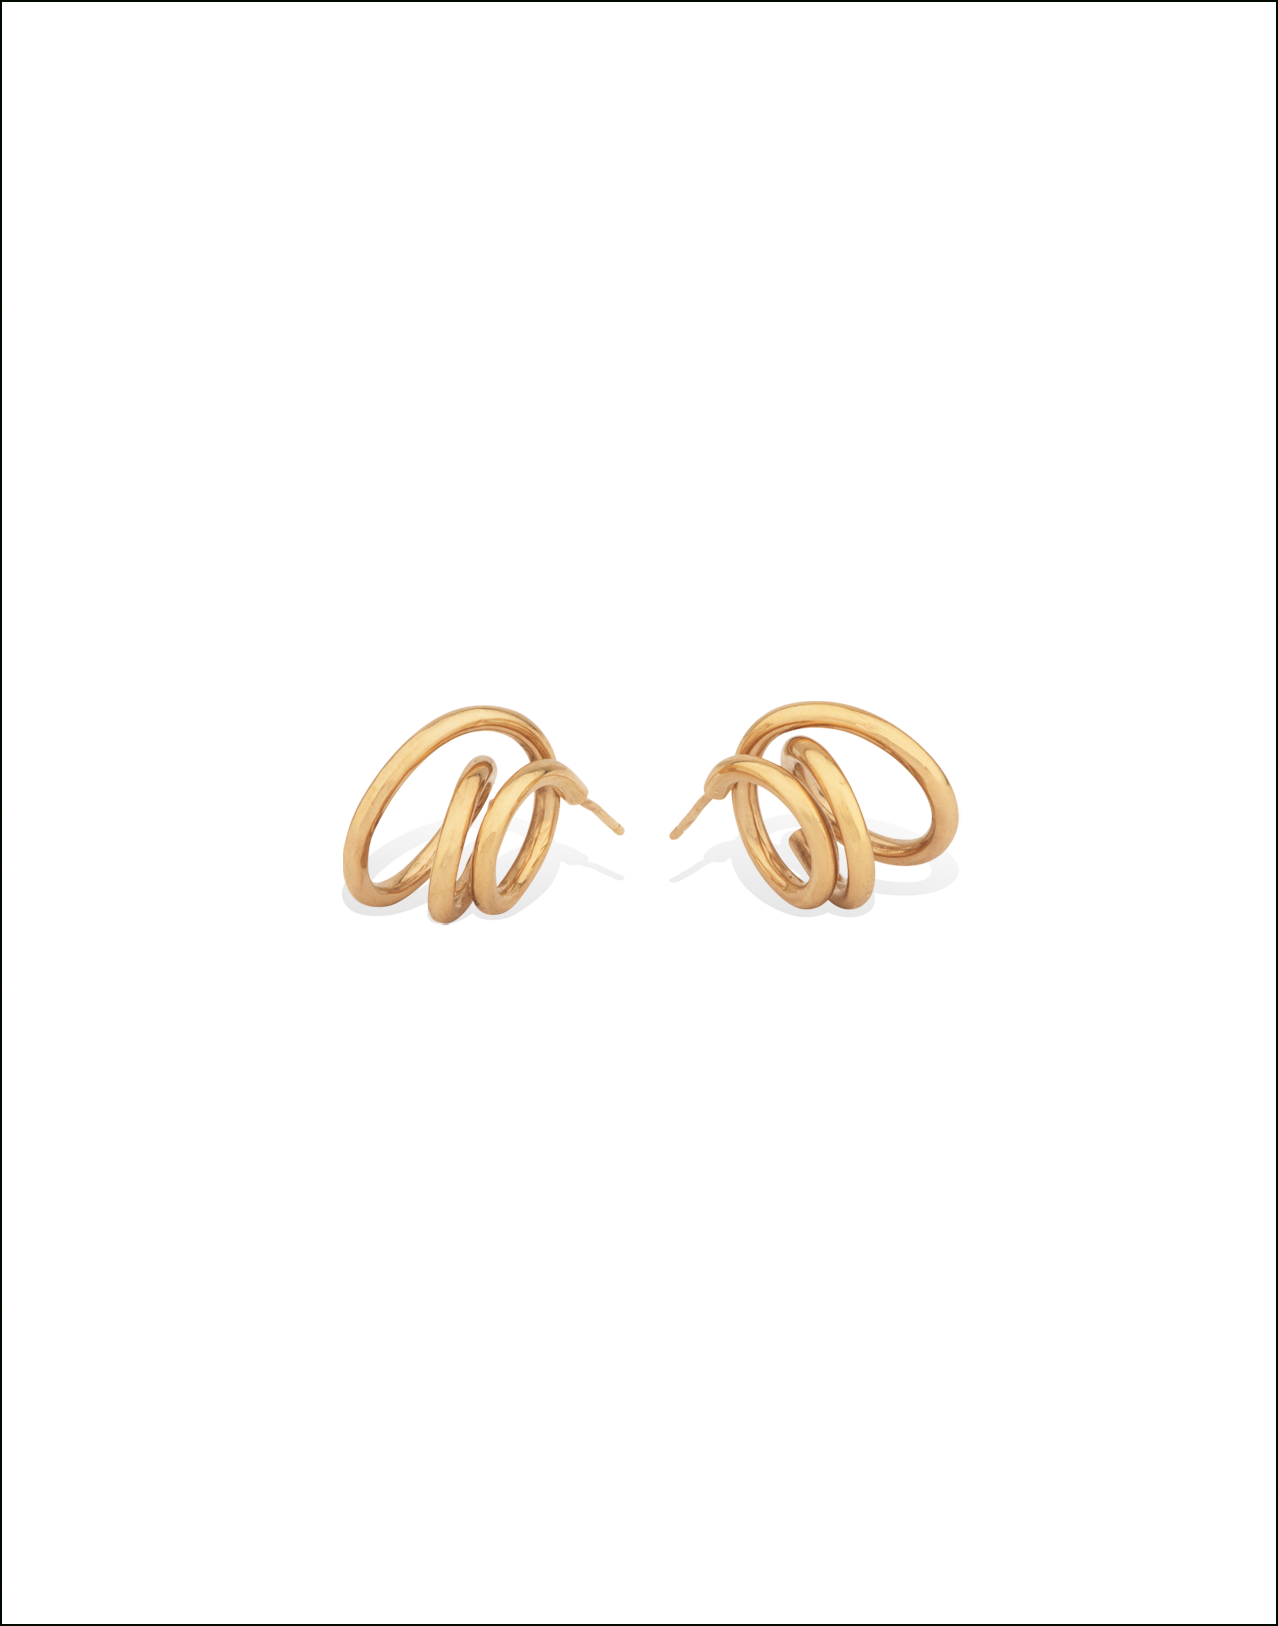 Completedworks-Earrings-Gold-Vermeil-Flow-5-1.png